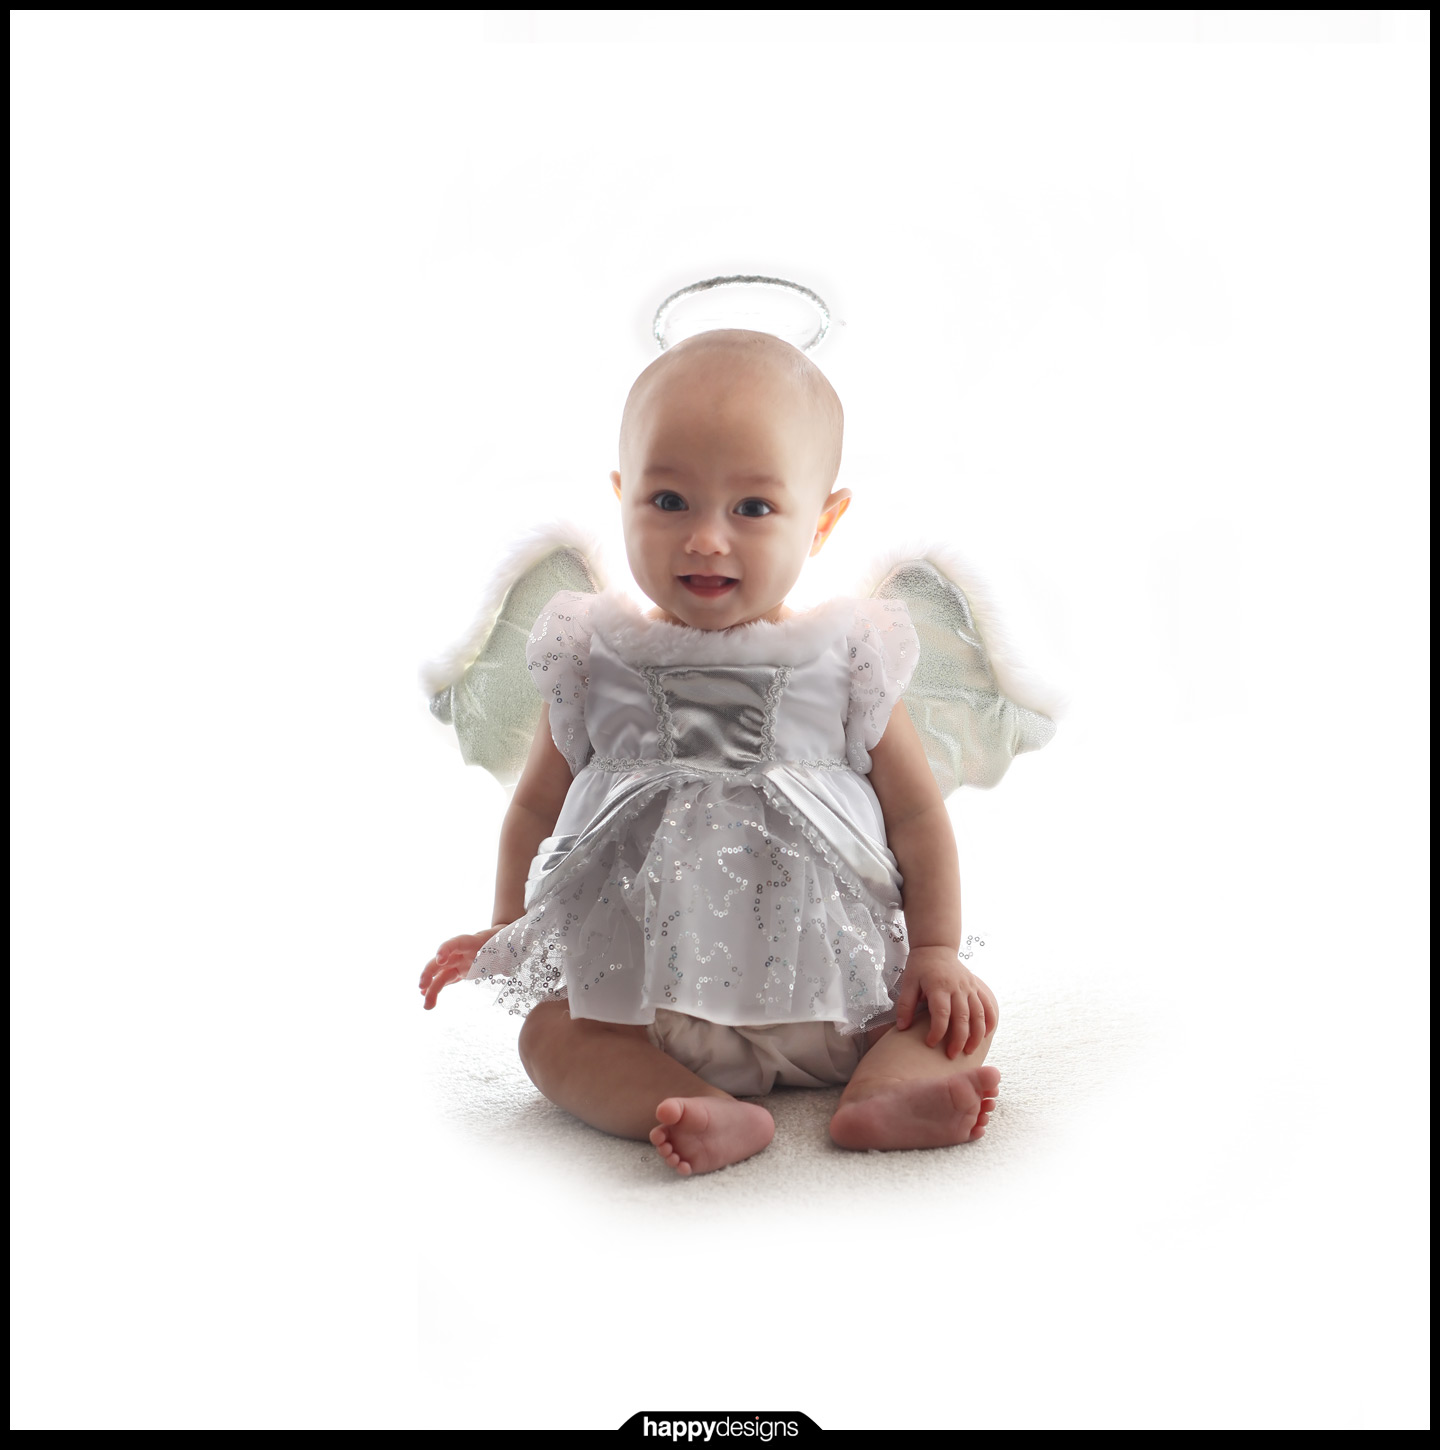 20091225 - Christmas angel